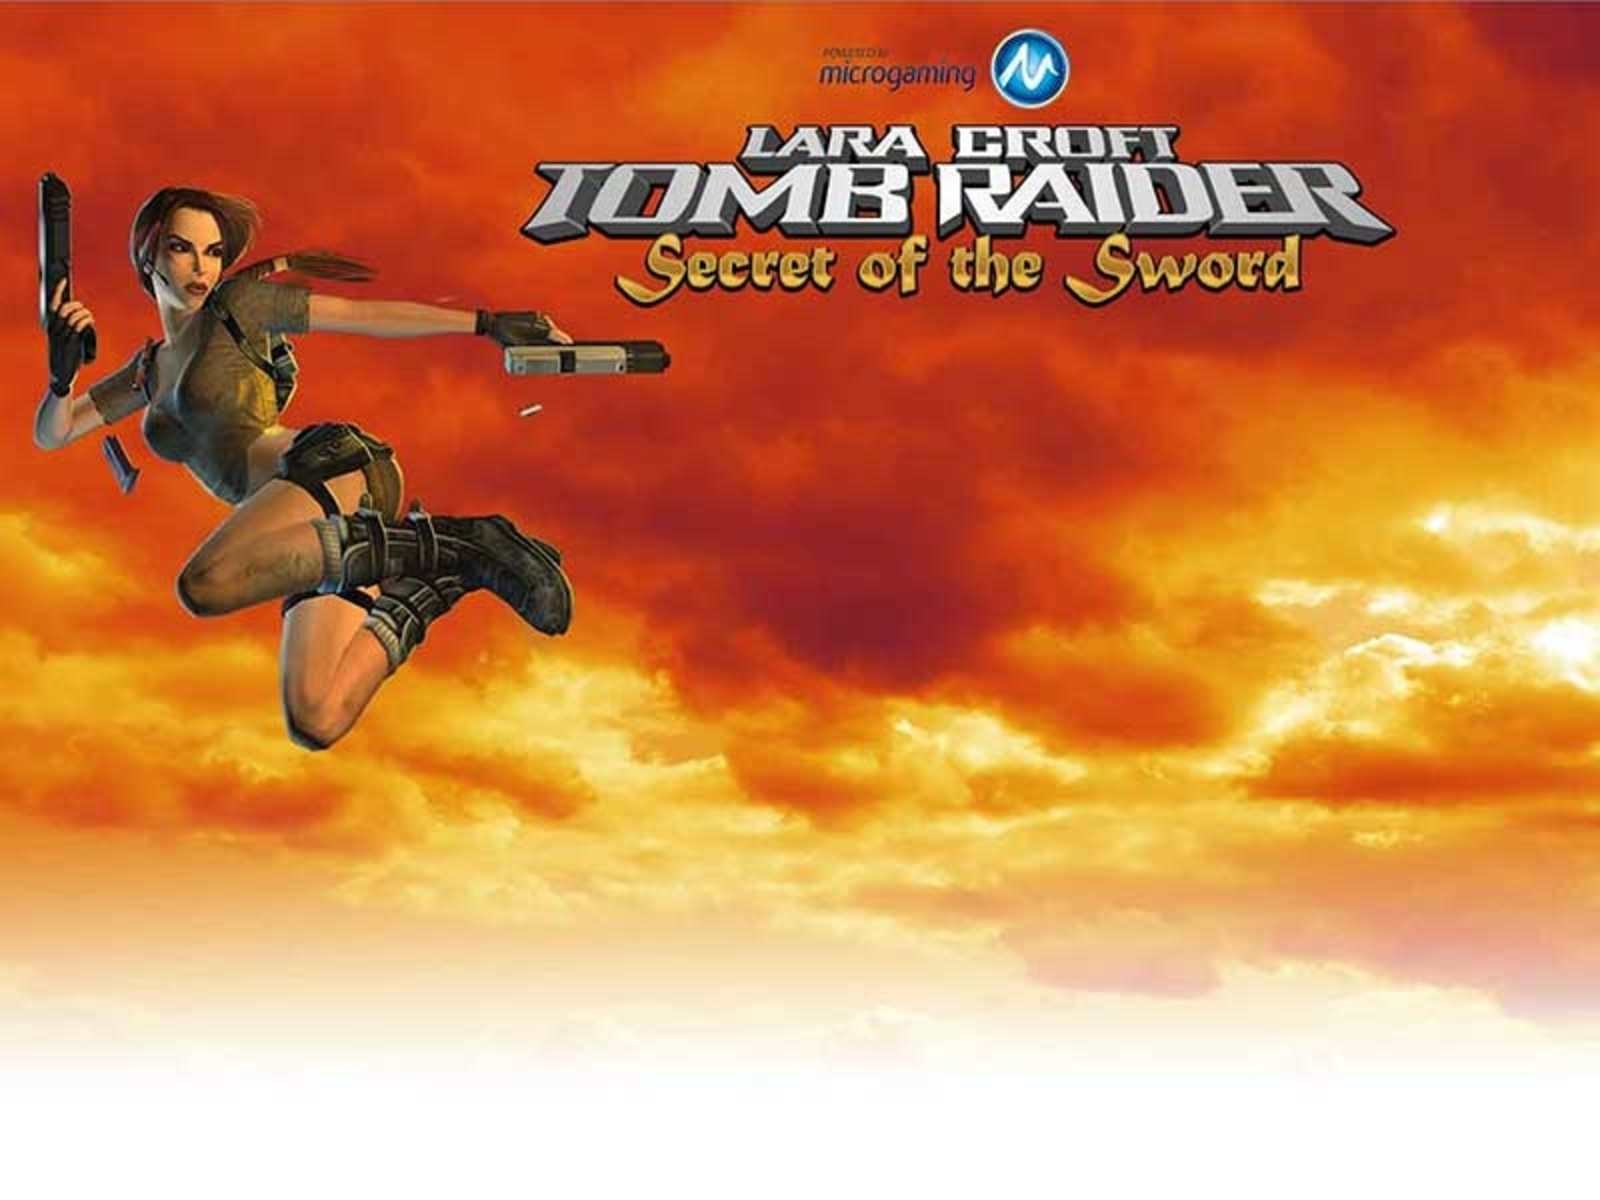 Tomb Raider Secret of the Sword Online Slot Demo Game by Microgaming